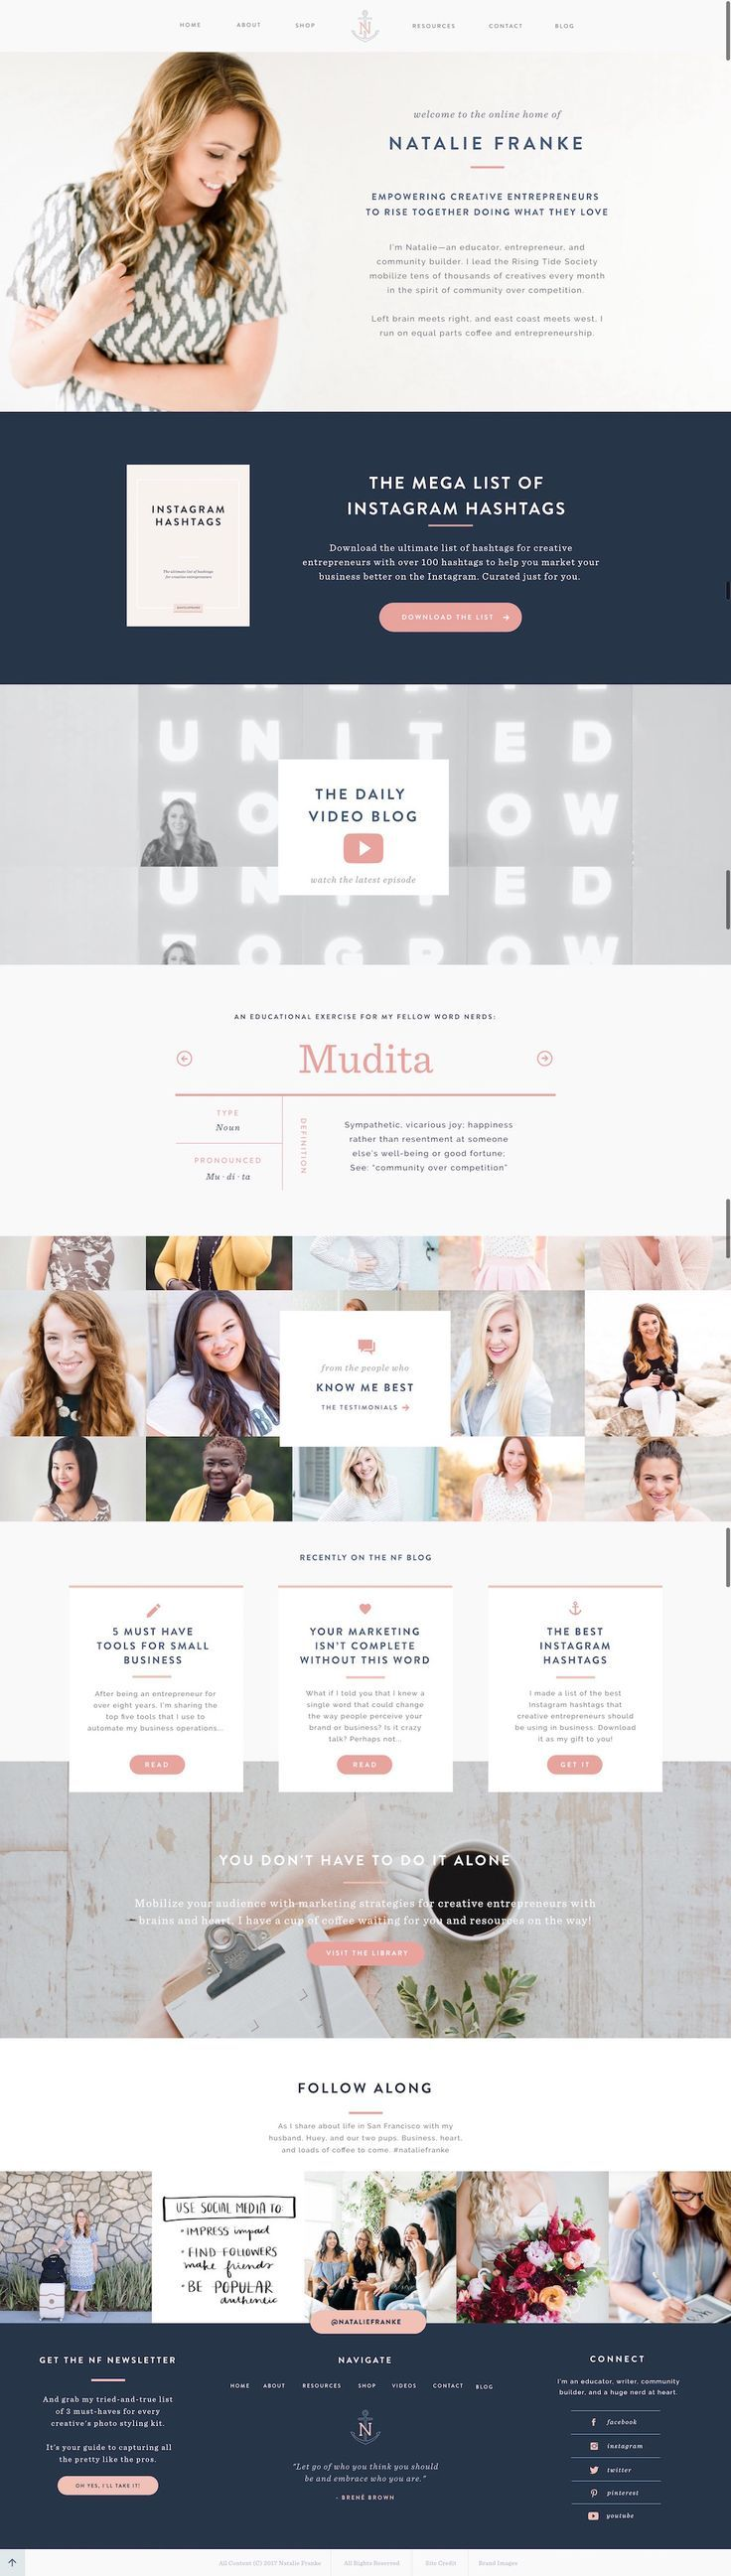 I Tested Out Showit Here S My Review With The Pros Cons Paige Brunton Squarespace Templates Squarespace Designer Courses Web Development Design Website Design Inspiration Web Design